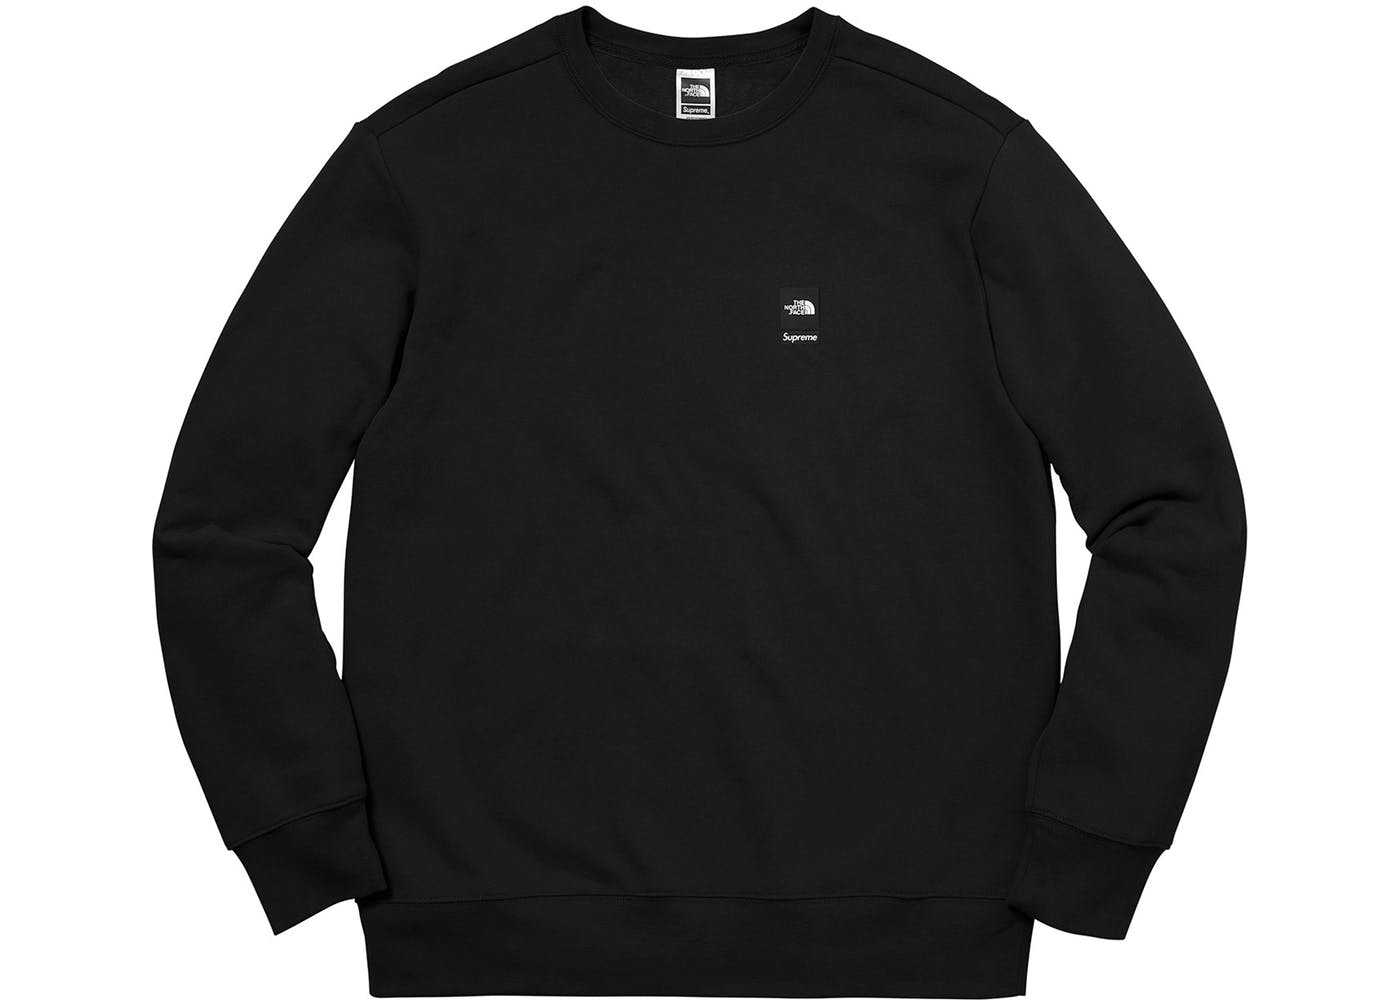 d854764f Supreme X The North Face Mountain Sweatshirt Black — Deadstock Chicago